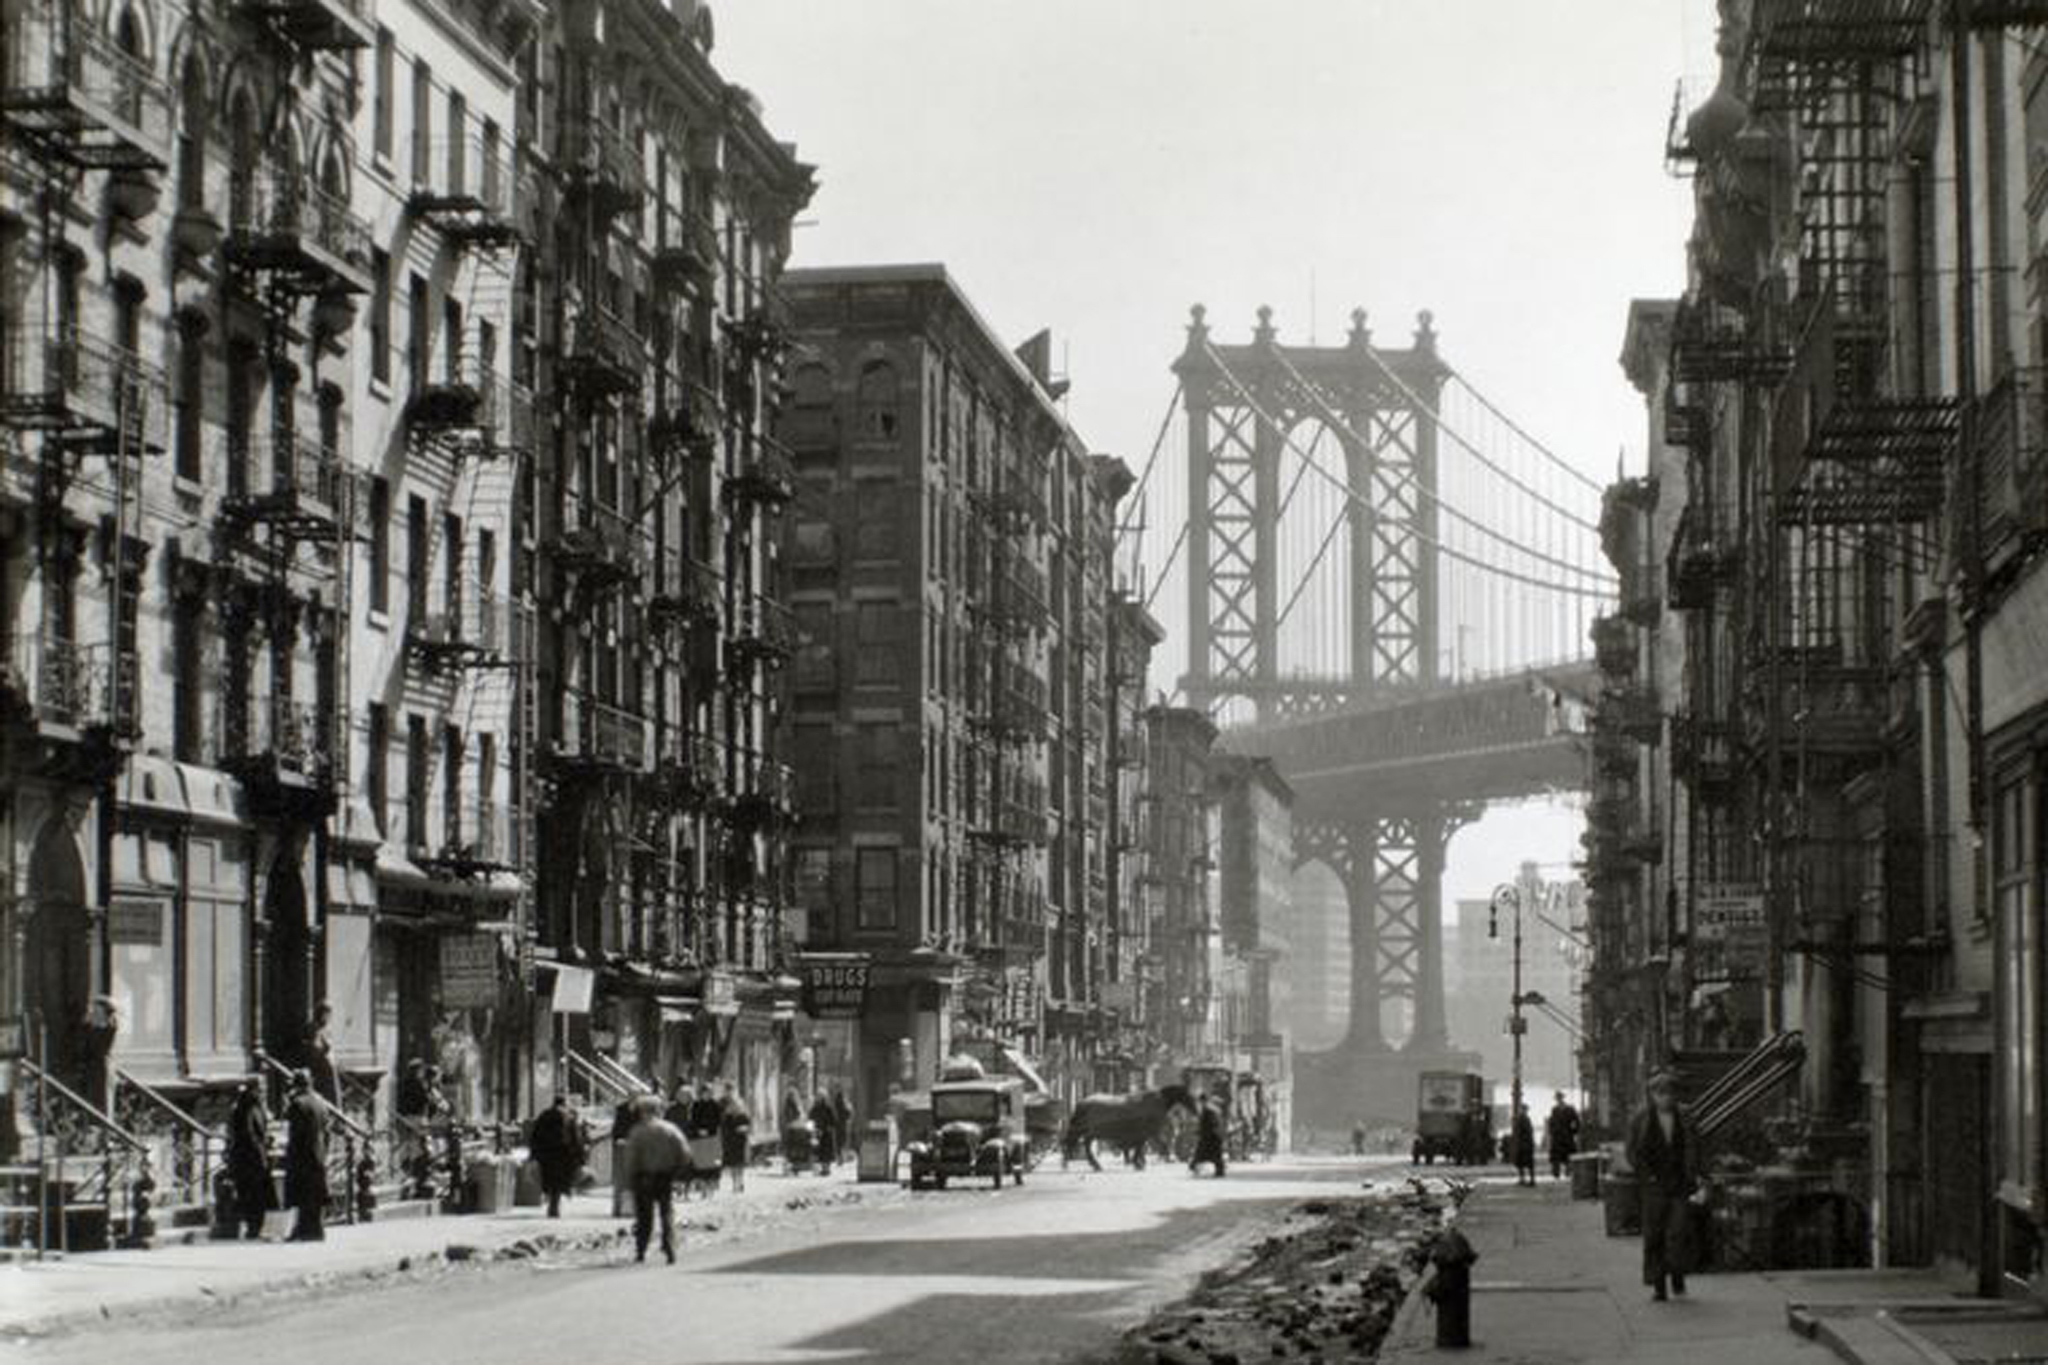 OldNYC: Mapping Historical Photographs of New